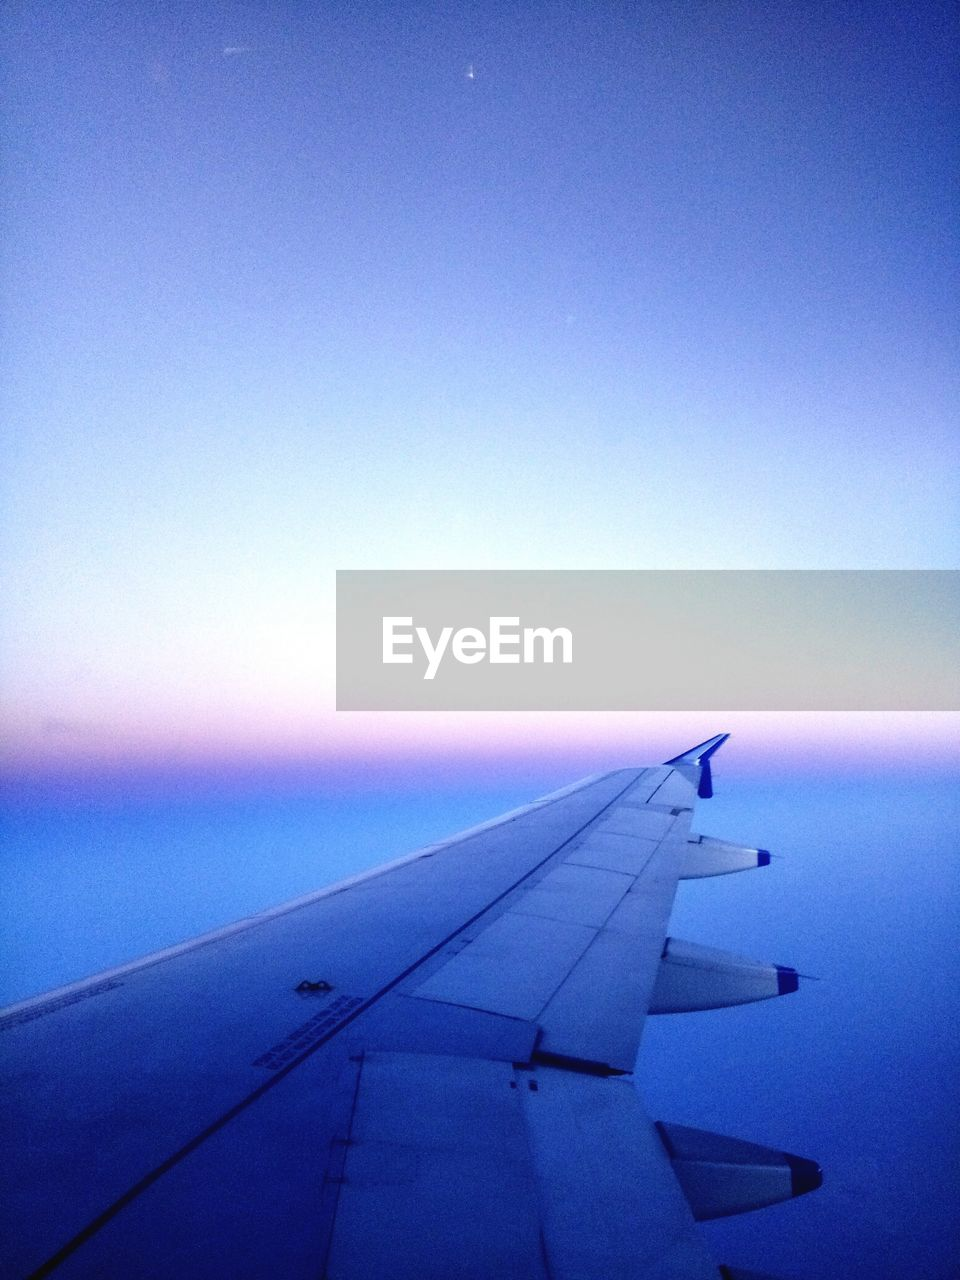 airplane, transportation, airplane wing, air vehicle, journey, no people, blue, mode of transport, aircraft wing, flying, sky, nature, travel, outdoors, clear sky, day, scenics, sunset, beauty in nature, water, close-up